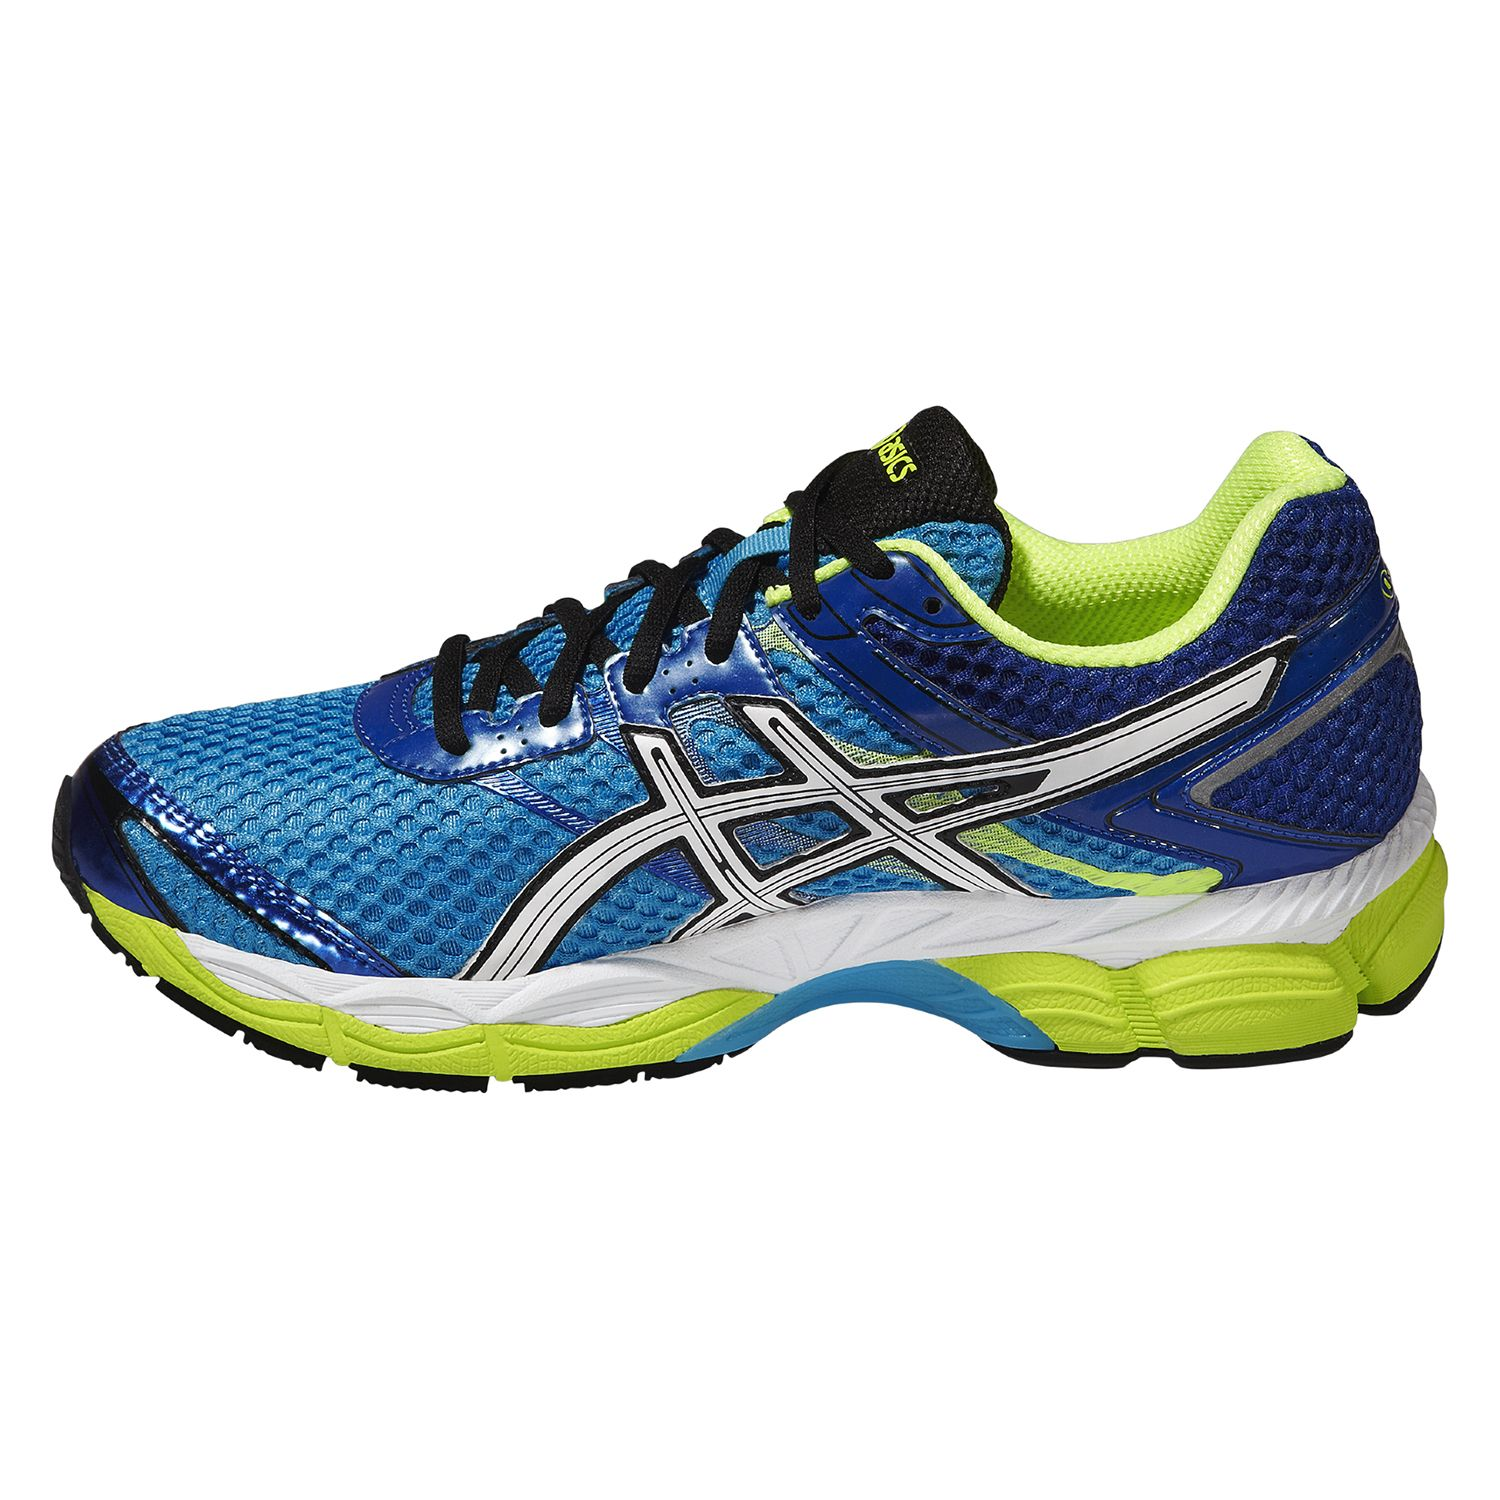 asics gel cumulus 16 mens running shoes sweatband